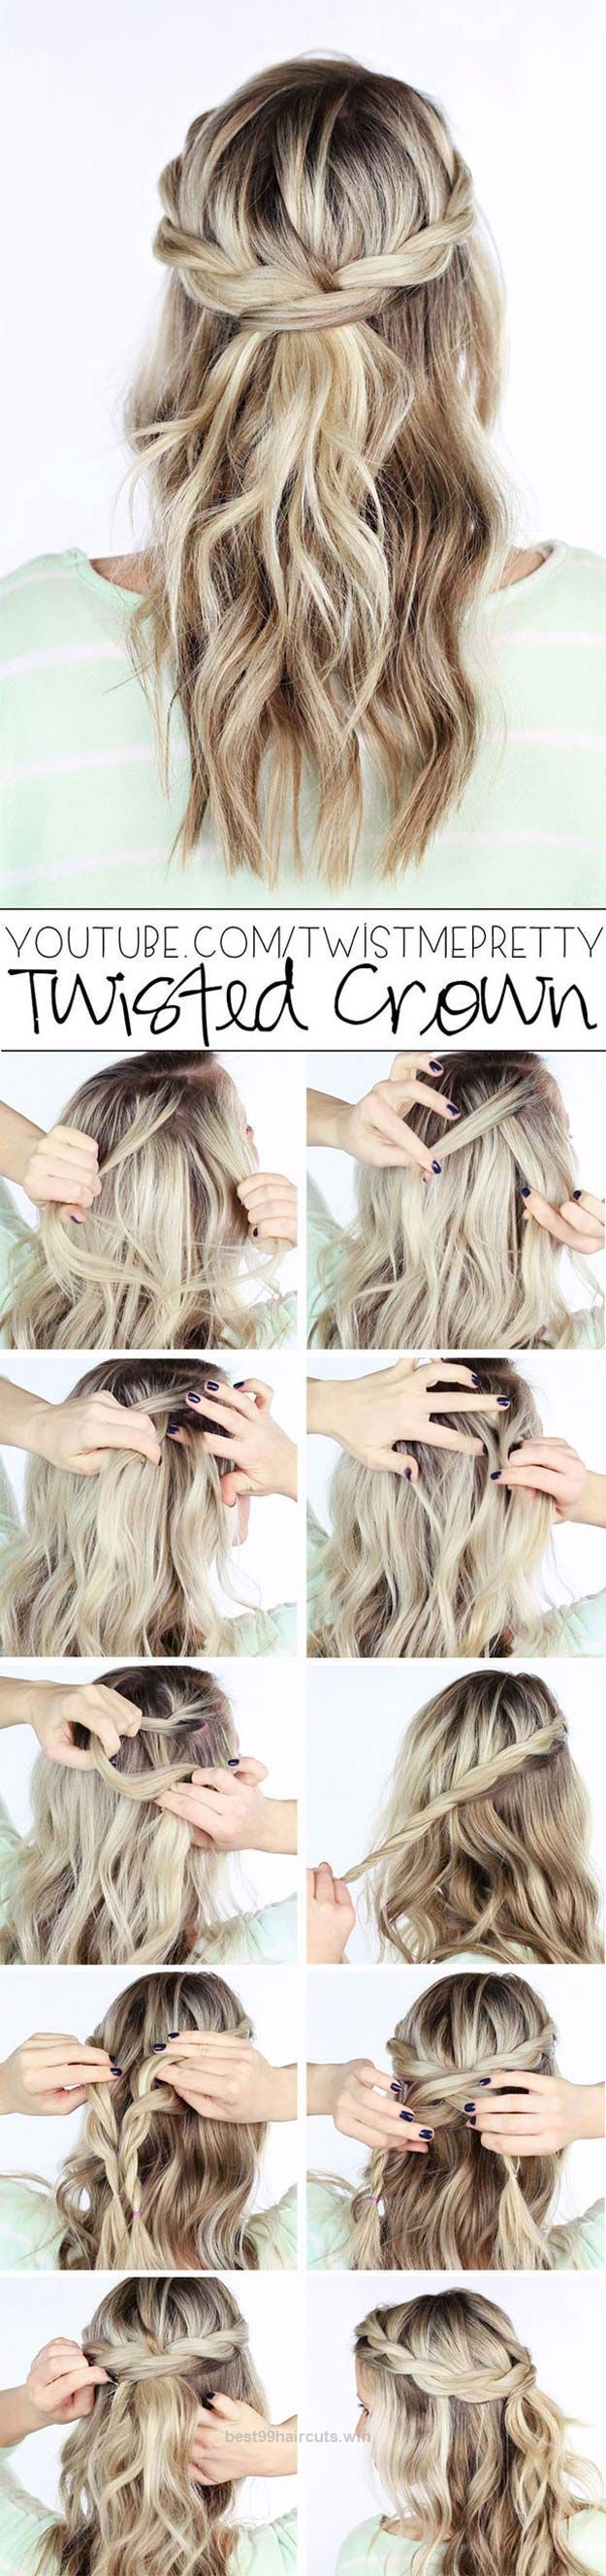 Terrific Cool and Easy DIY Hairstyles – Twisted Crown Braid – Quick and Easy Ideas for Back to School Styles for Medium, Short and Long Hair – Fun Tips and Best Step by Step Tutorials f ..